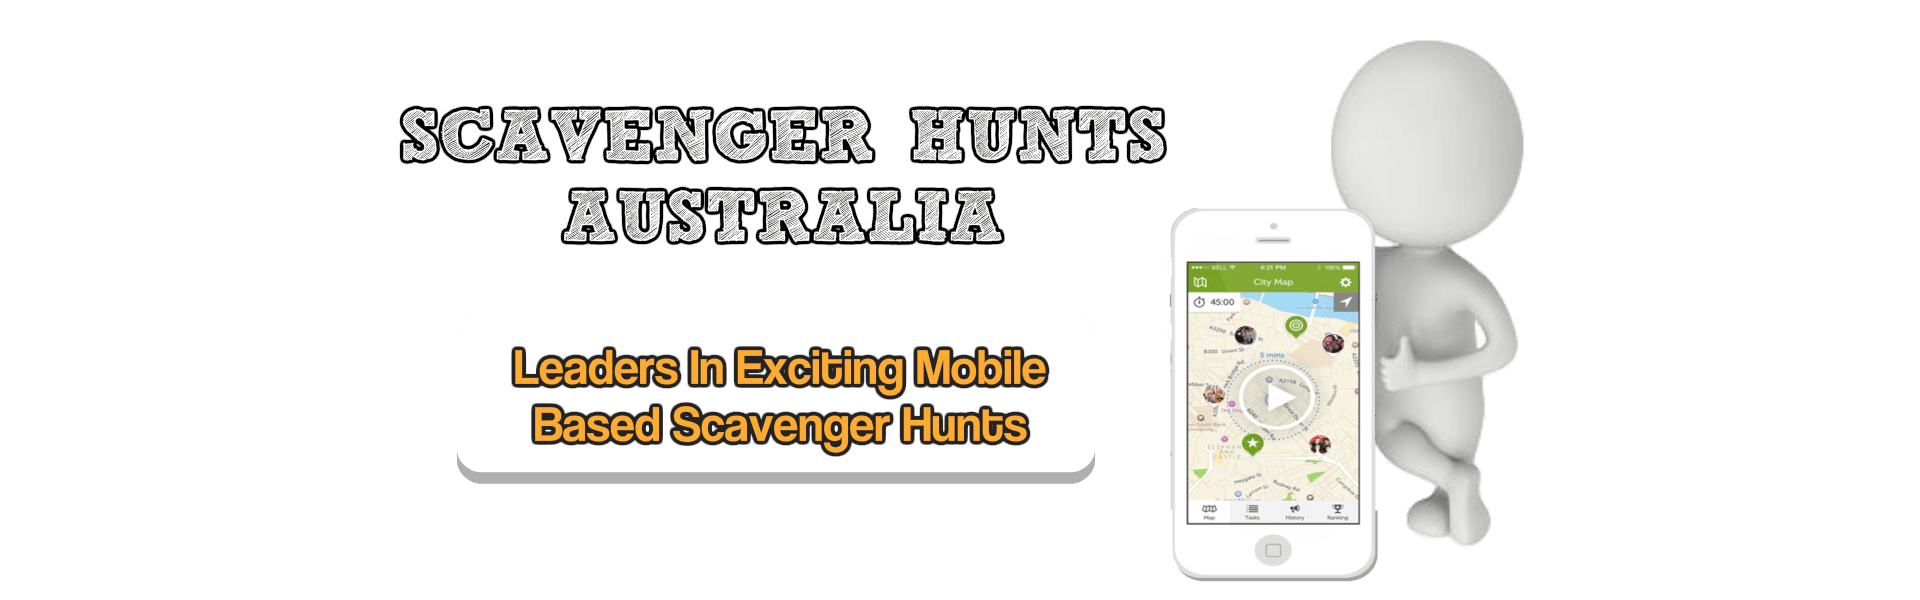 Scavenger Hunt Header Image Transparent